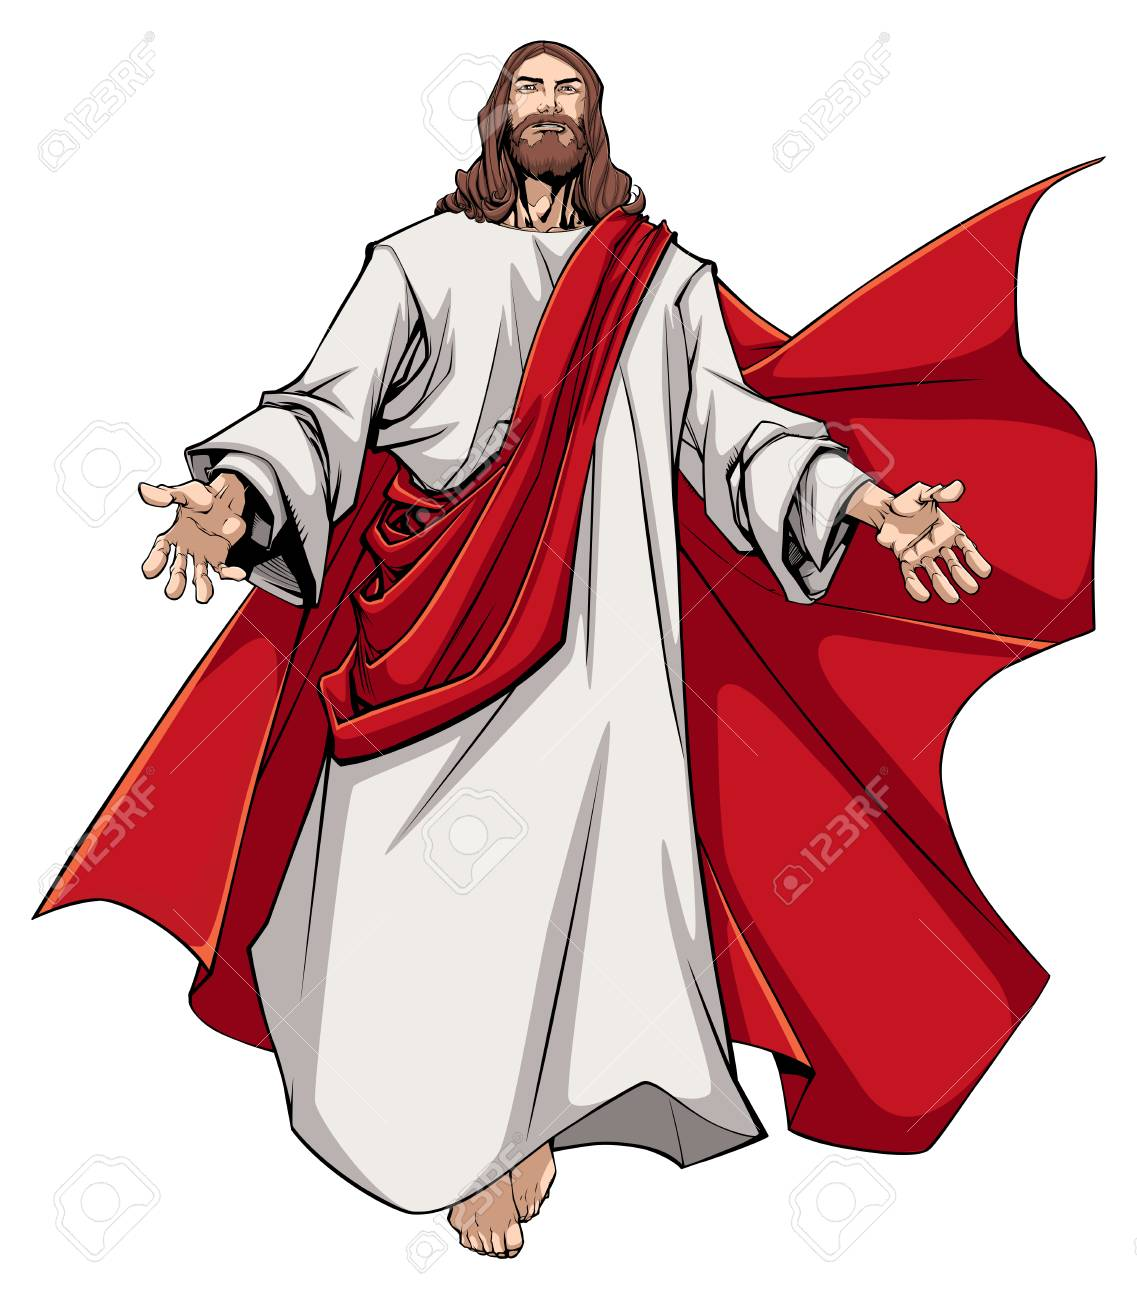 Illustration of Jesus Christ greeting you with open arms..